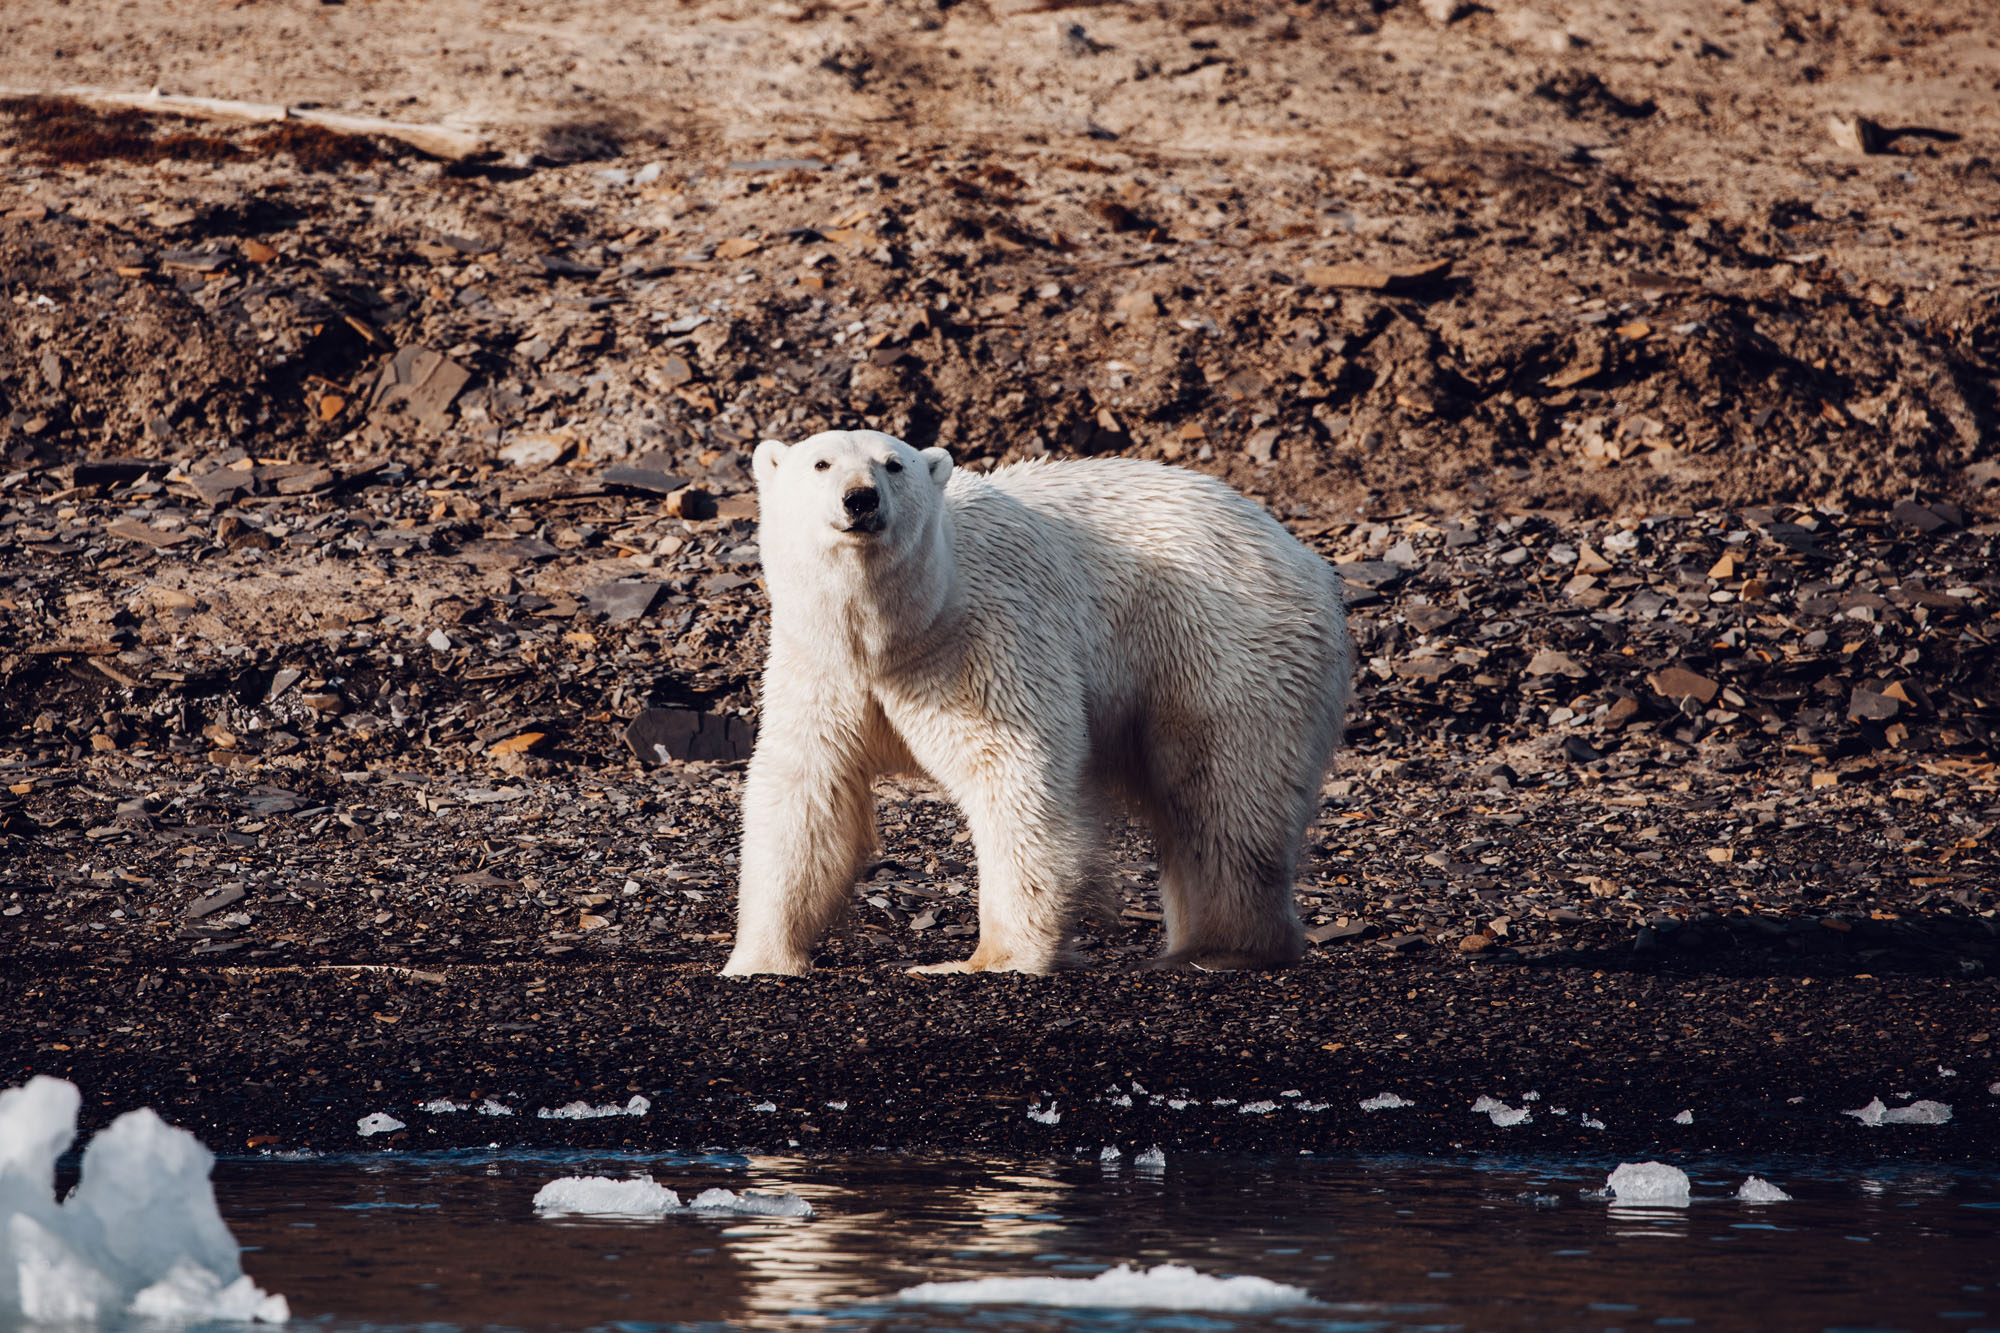 Polar bear in Spitsbergen, Svalbard, Norway